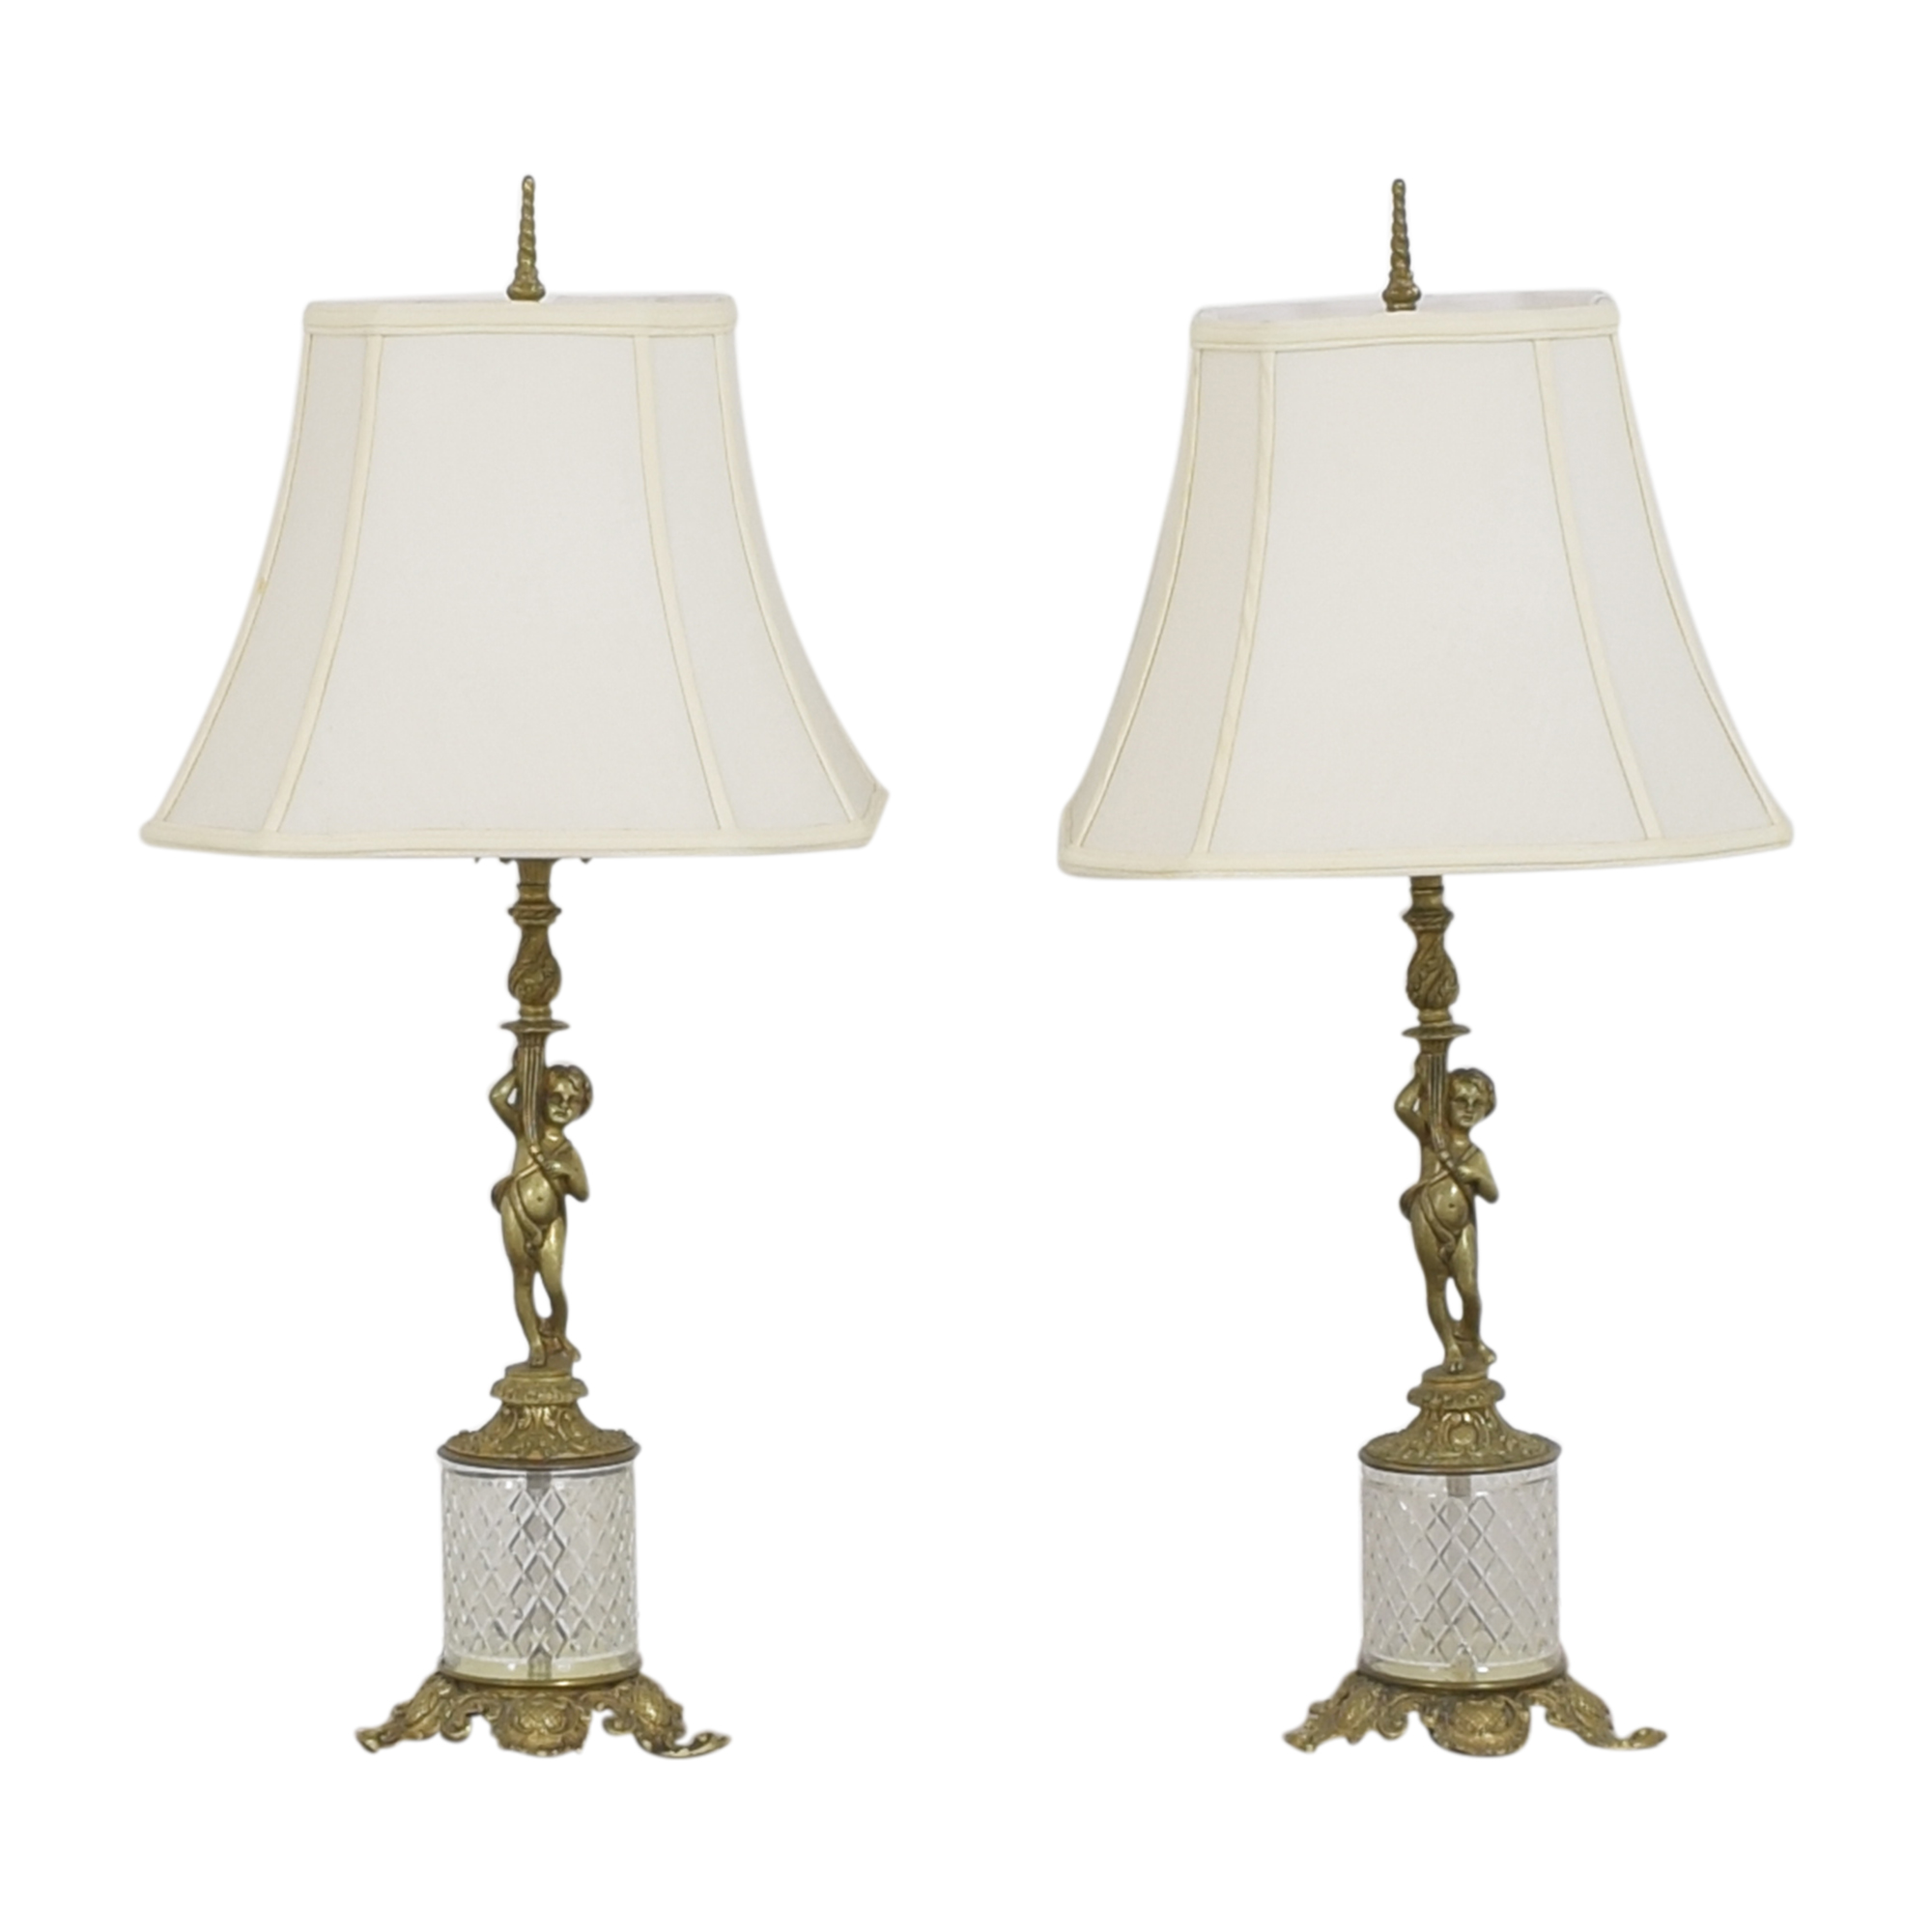 buy Cherub Table Lamps  Decor